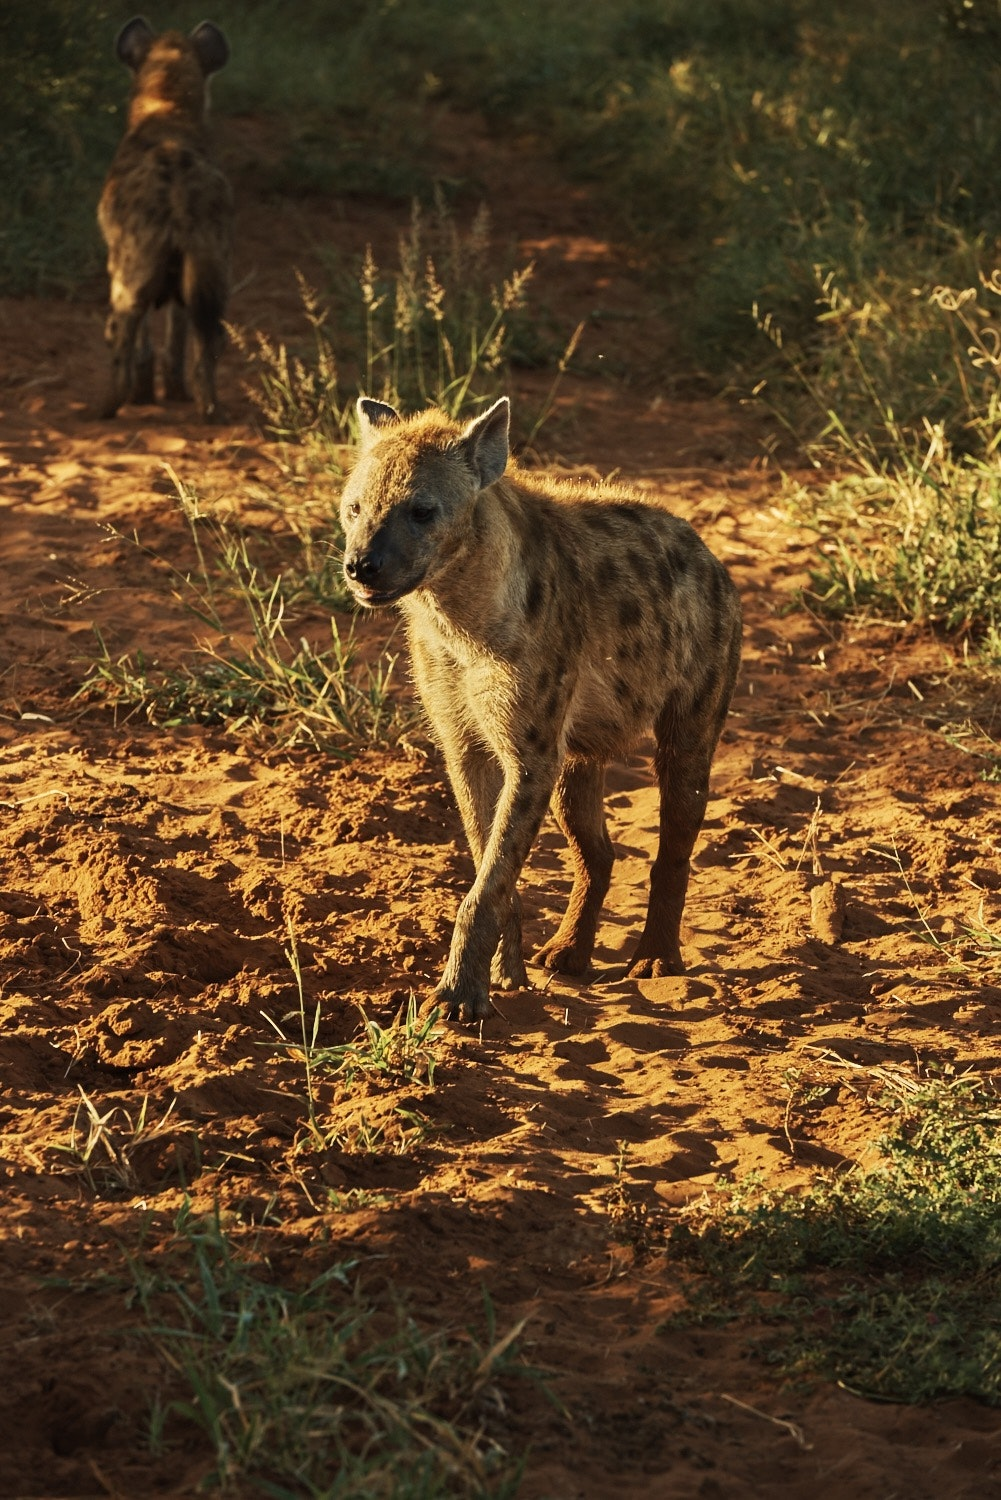 The spotted hyena is the only hyena species that laughs.